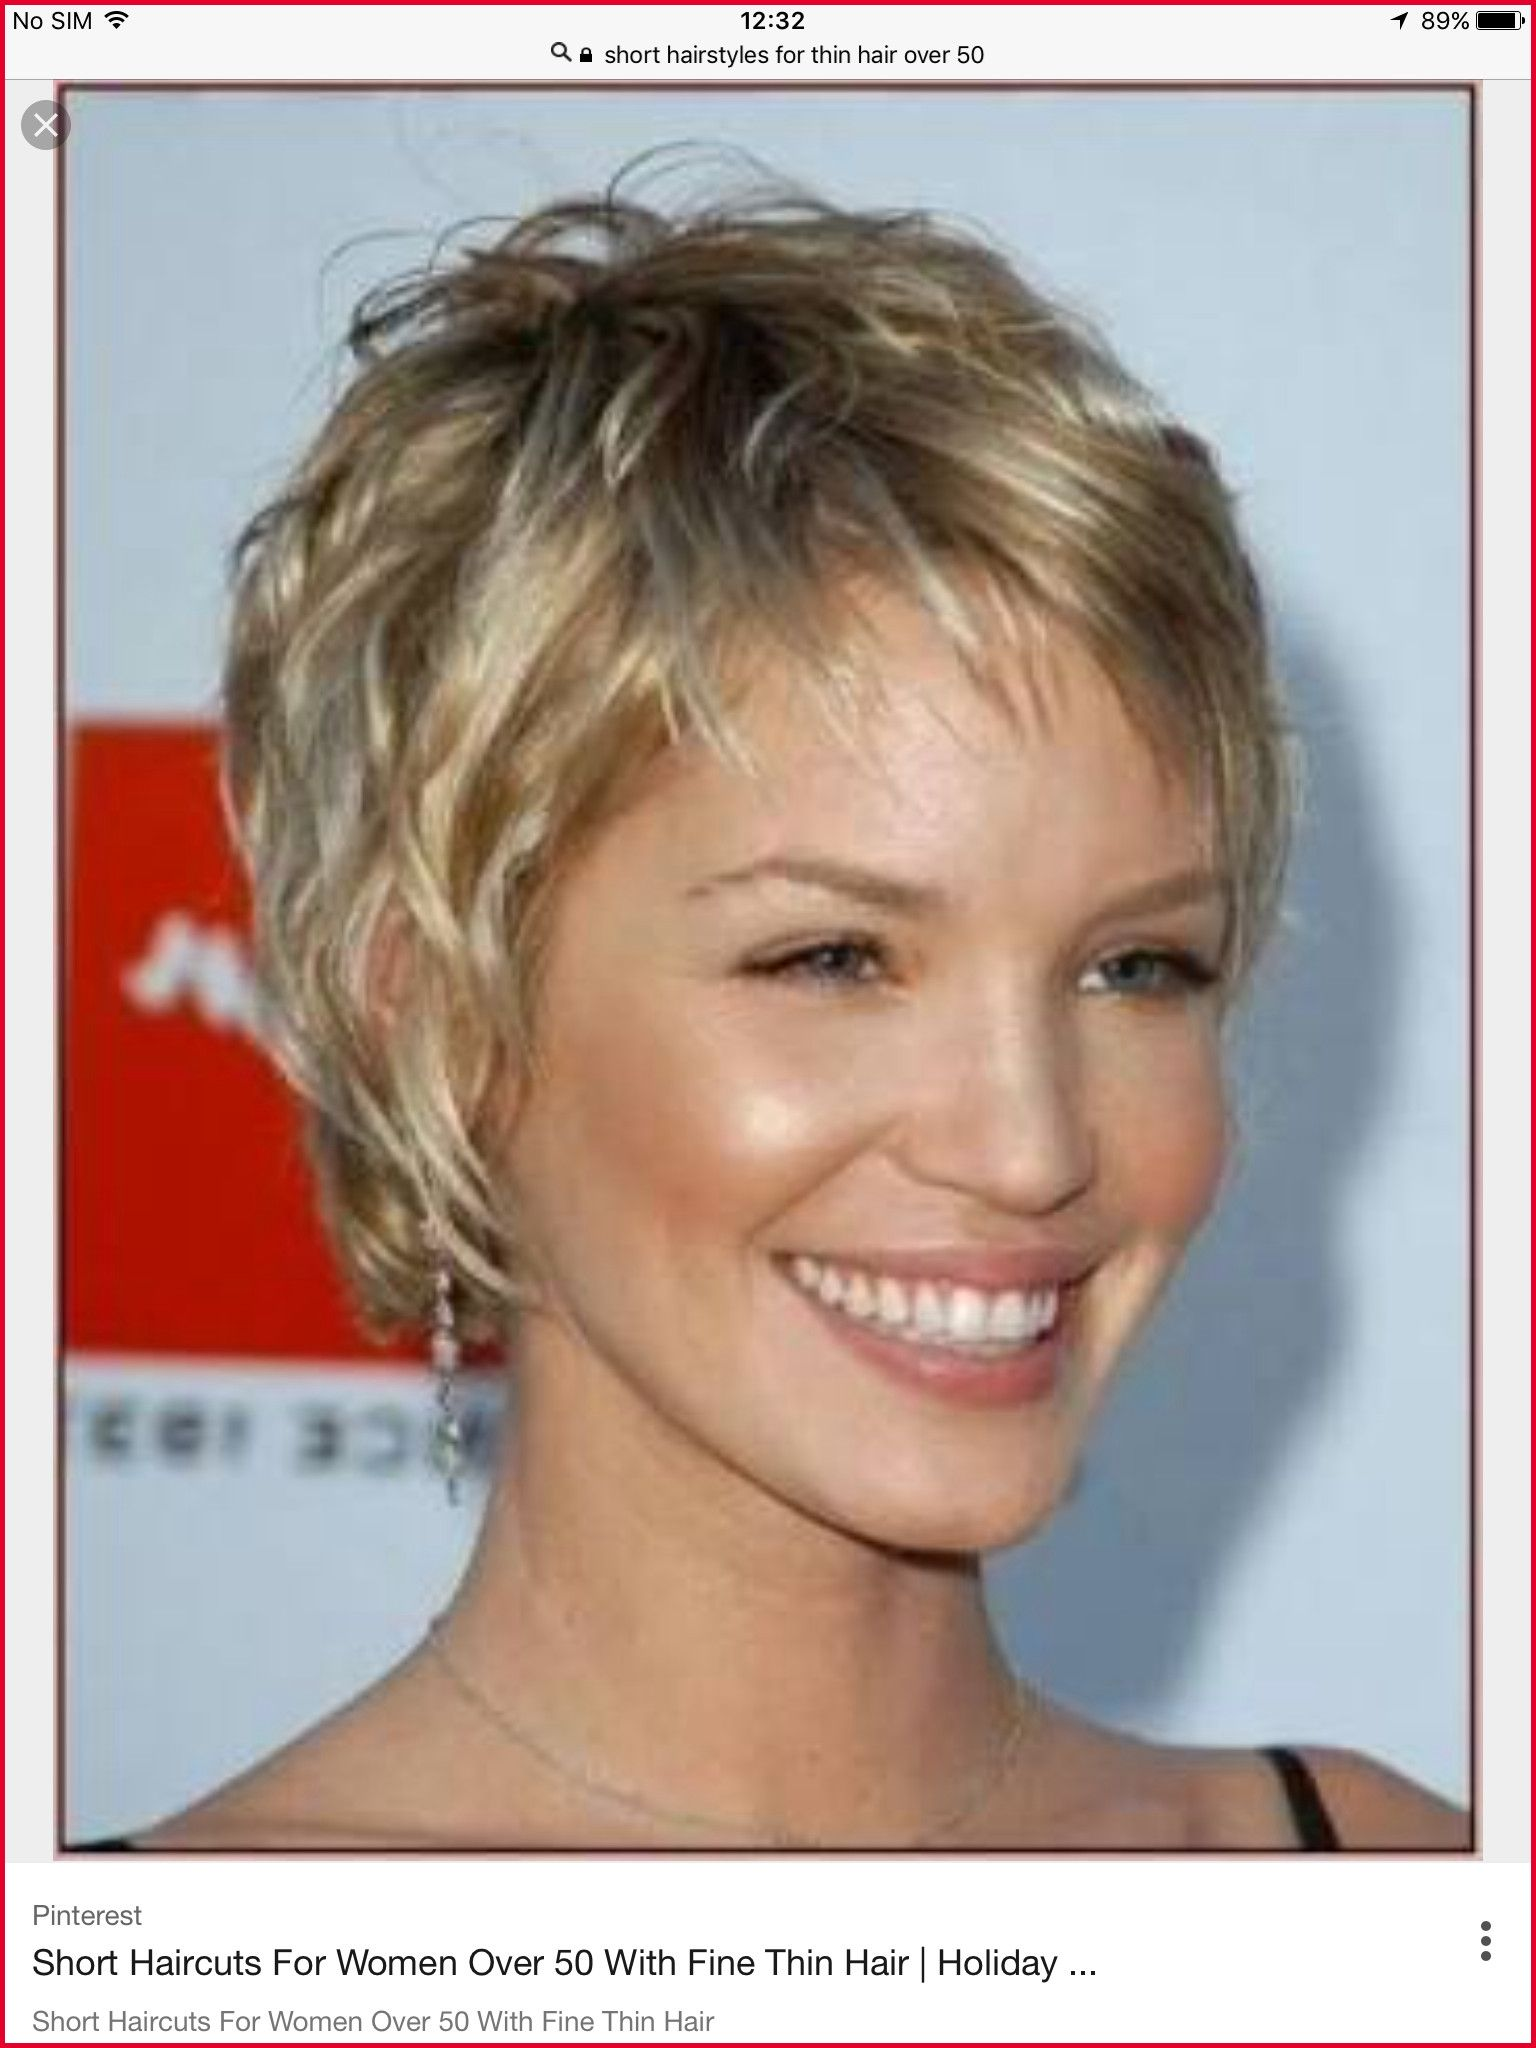 Image Result For Wash And Wear Short Haircuts With Bangs Short Thin Hair Short Hairstyles Fine Hairstyles For Thin Hair